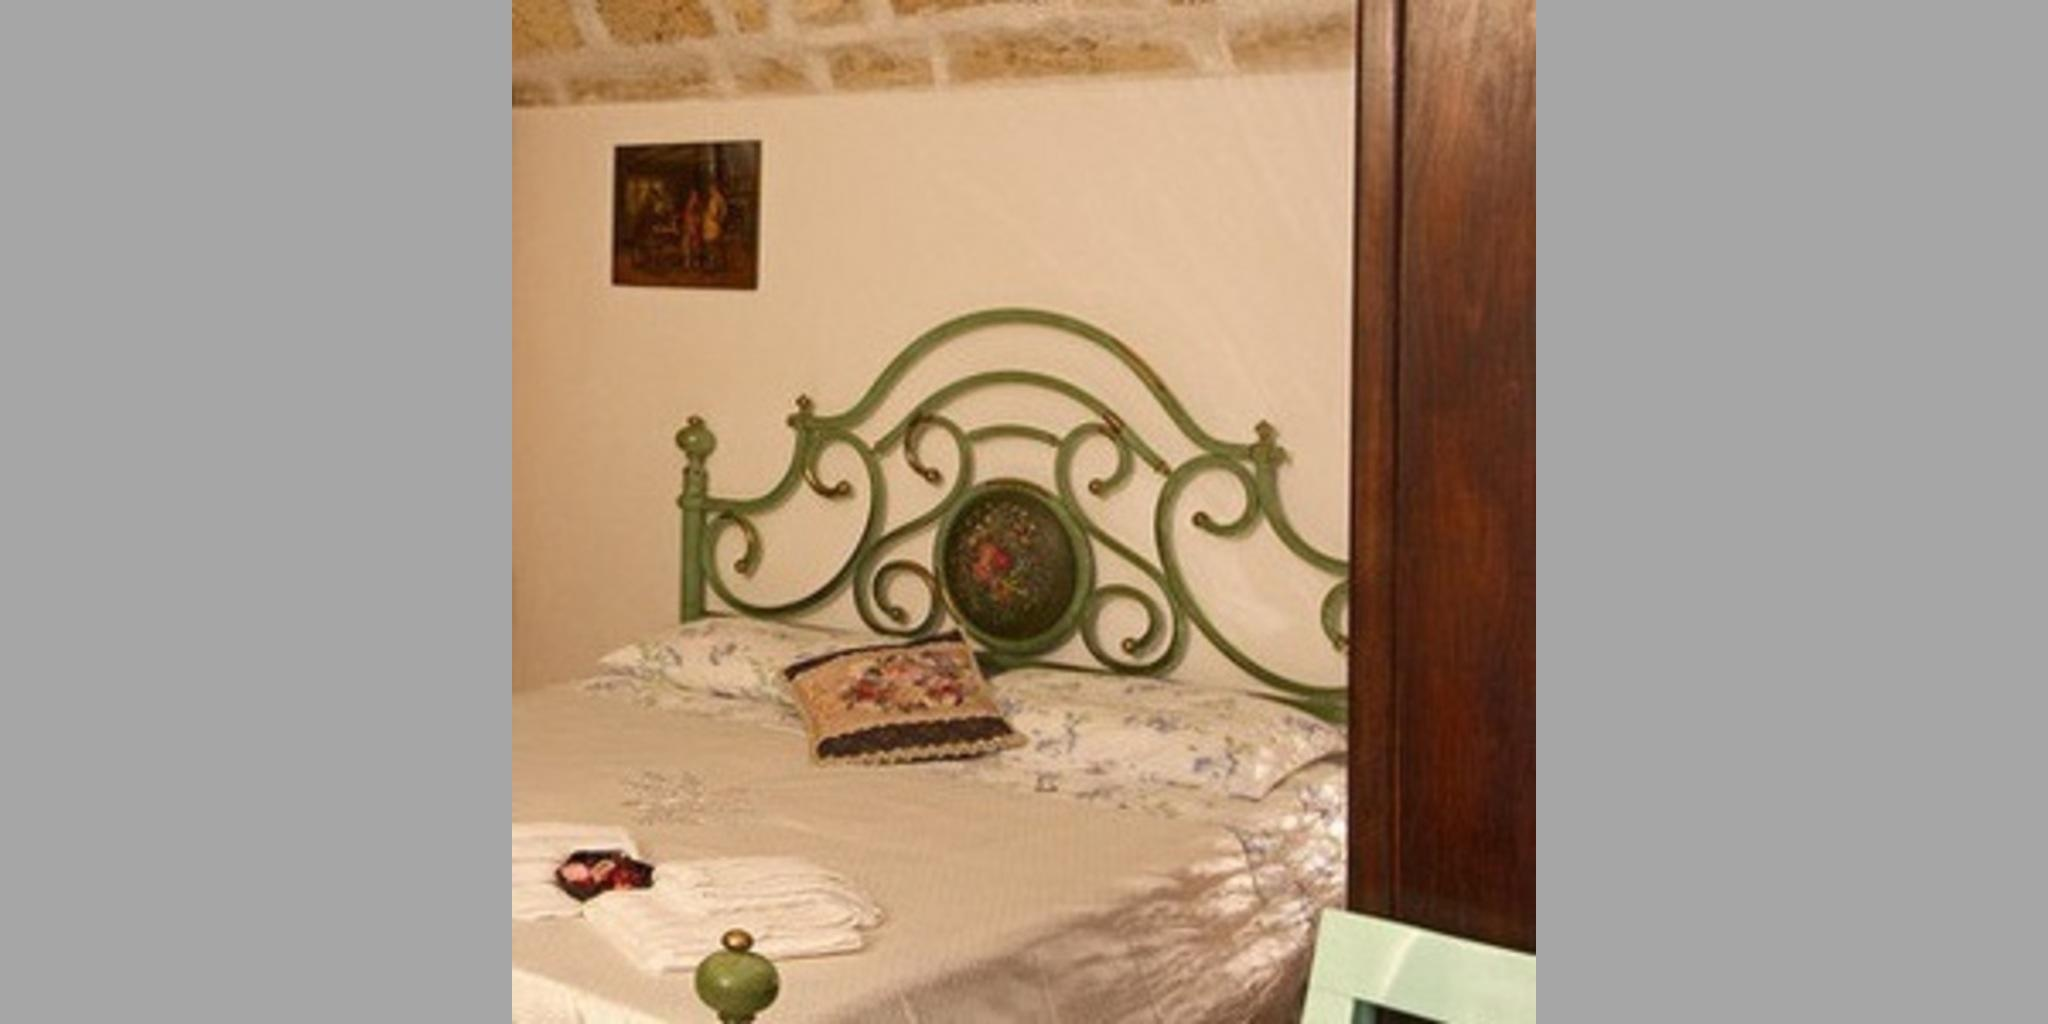 Bed & Breakfast Lecce - Don Bosco_A